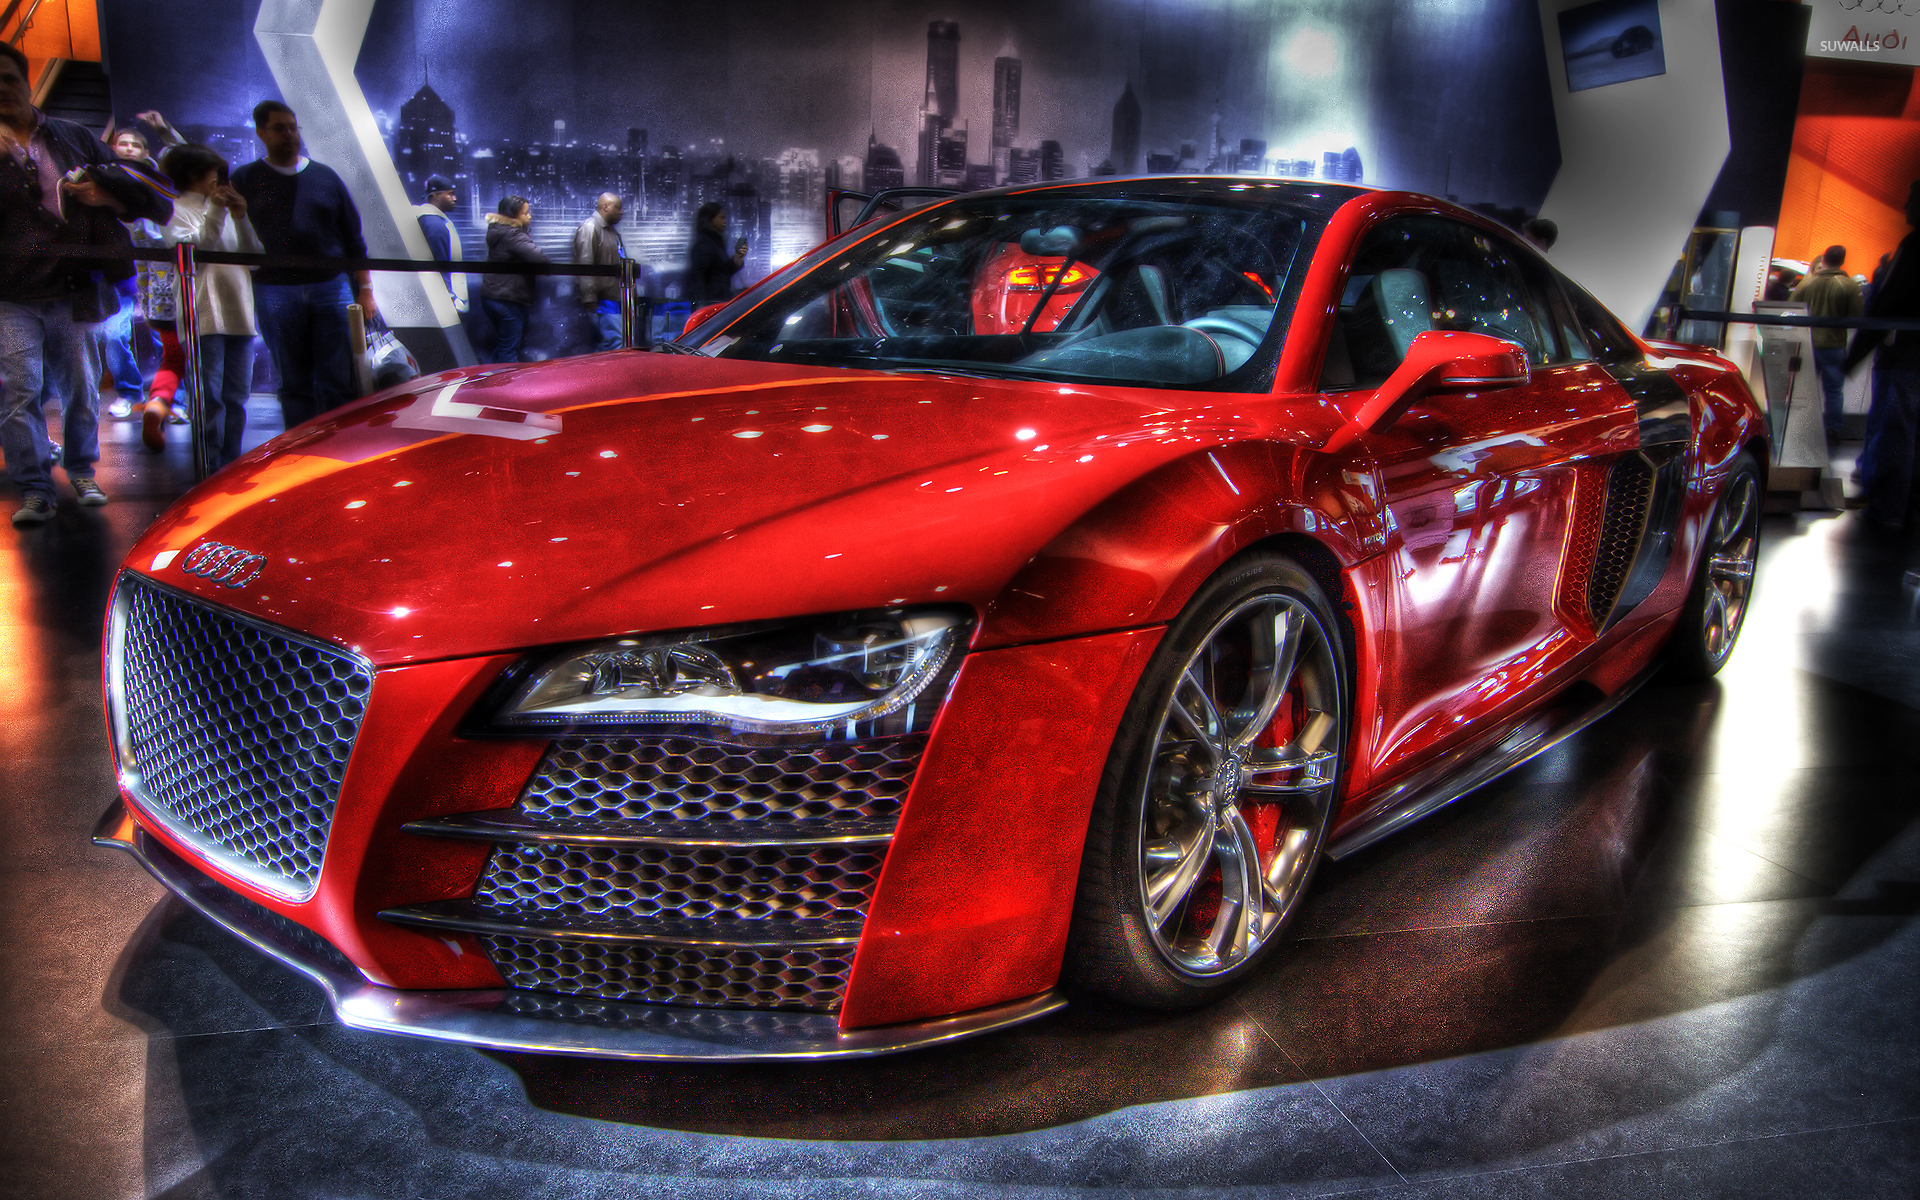 Red Audi R8 in a show room wallpaper - Car wallpapers - #53250